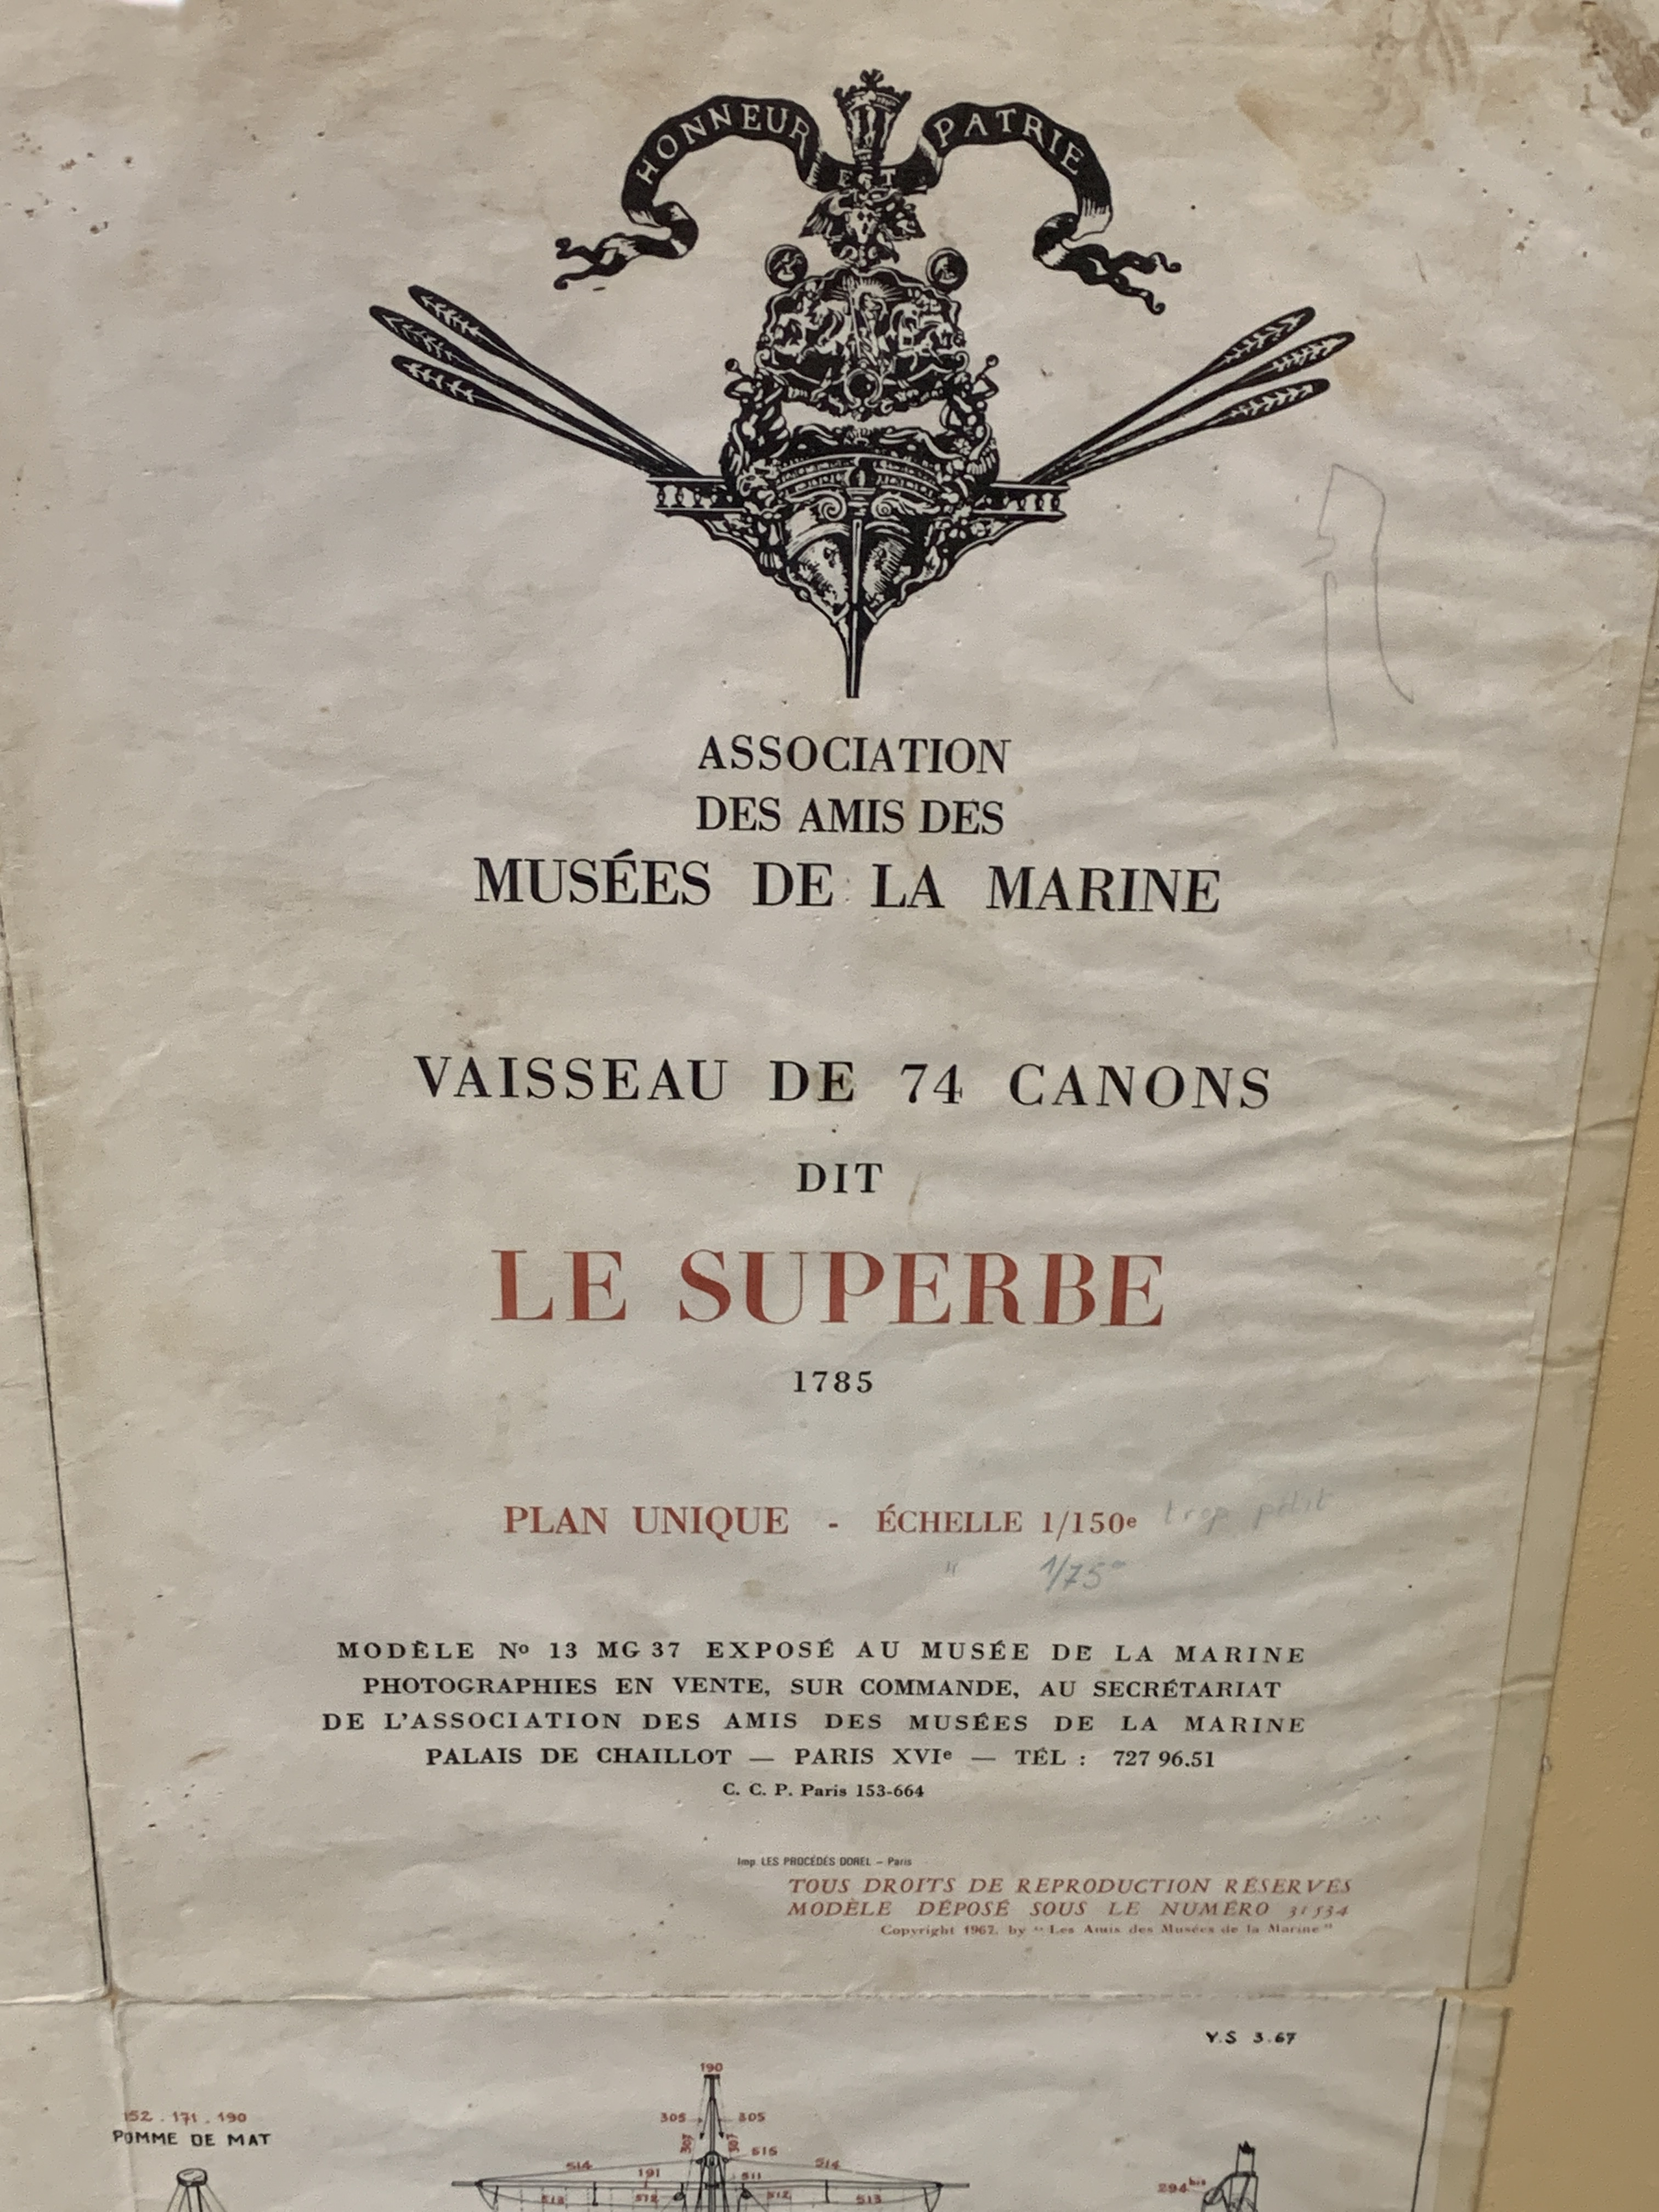 A Musee de La Marie, 1/150 scale plan of the 74 gun warship Le Superbe - Image 5 of 5